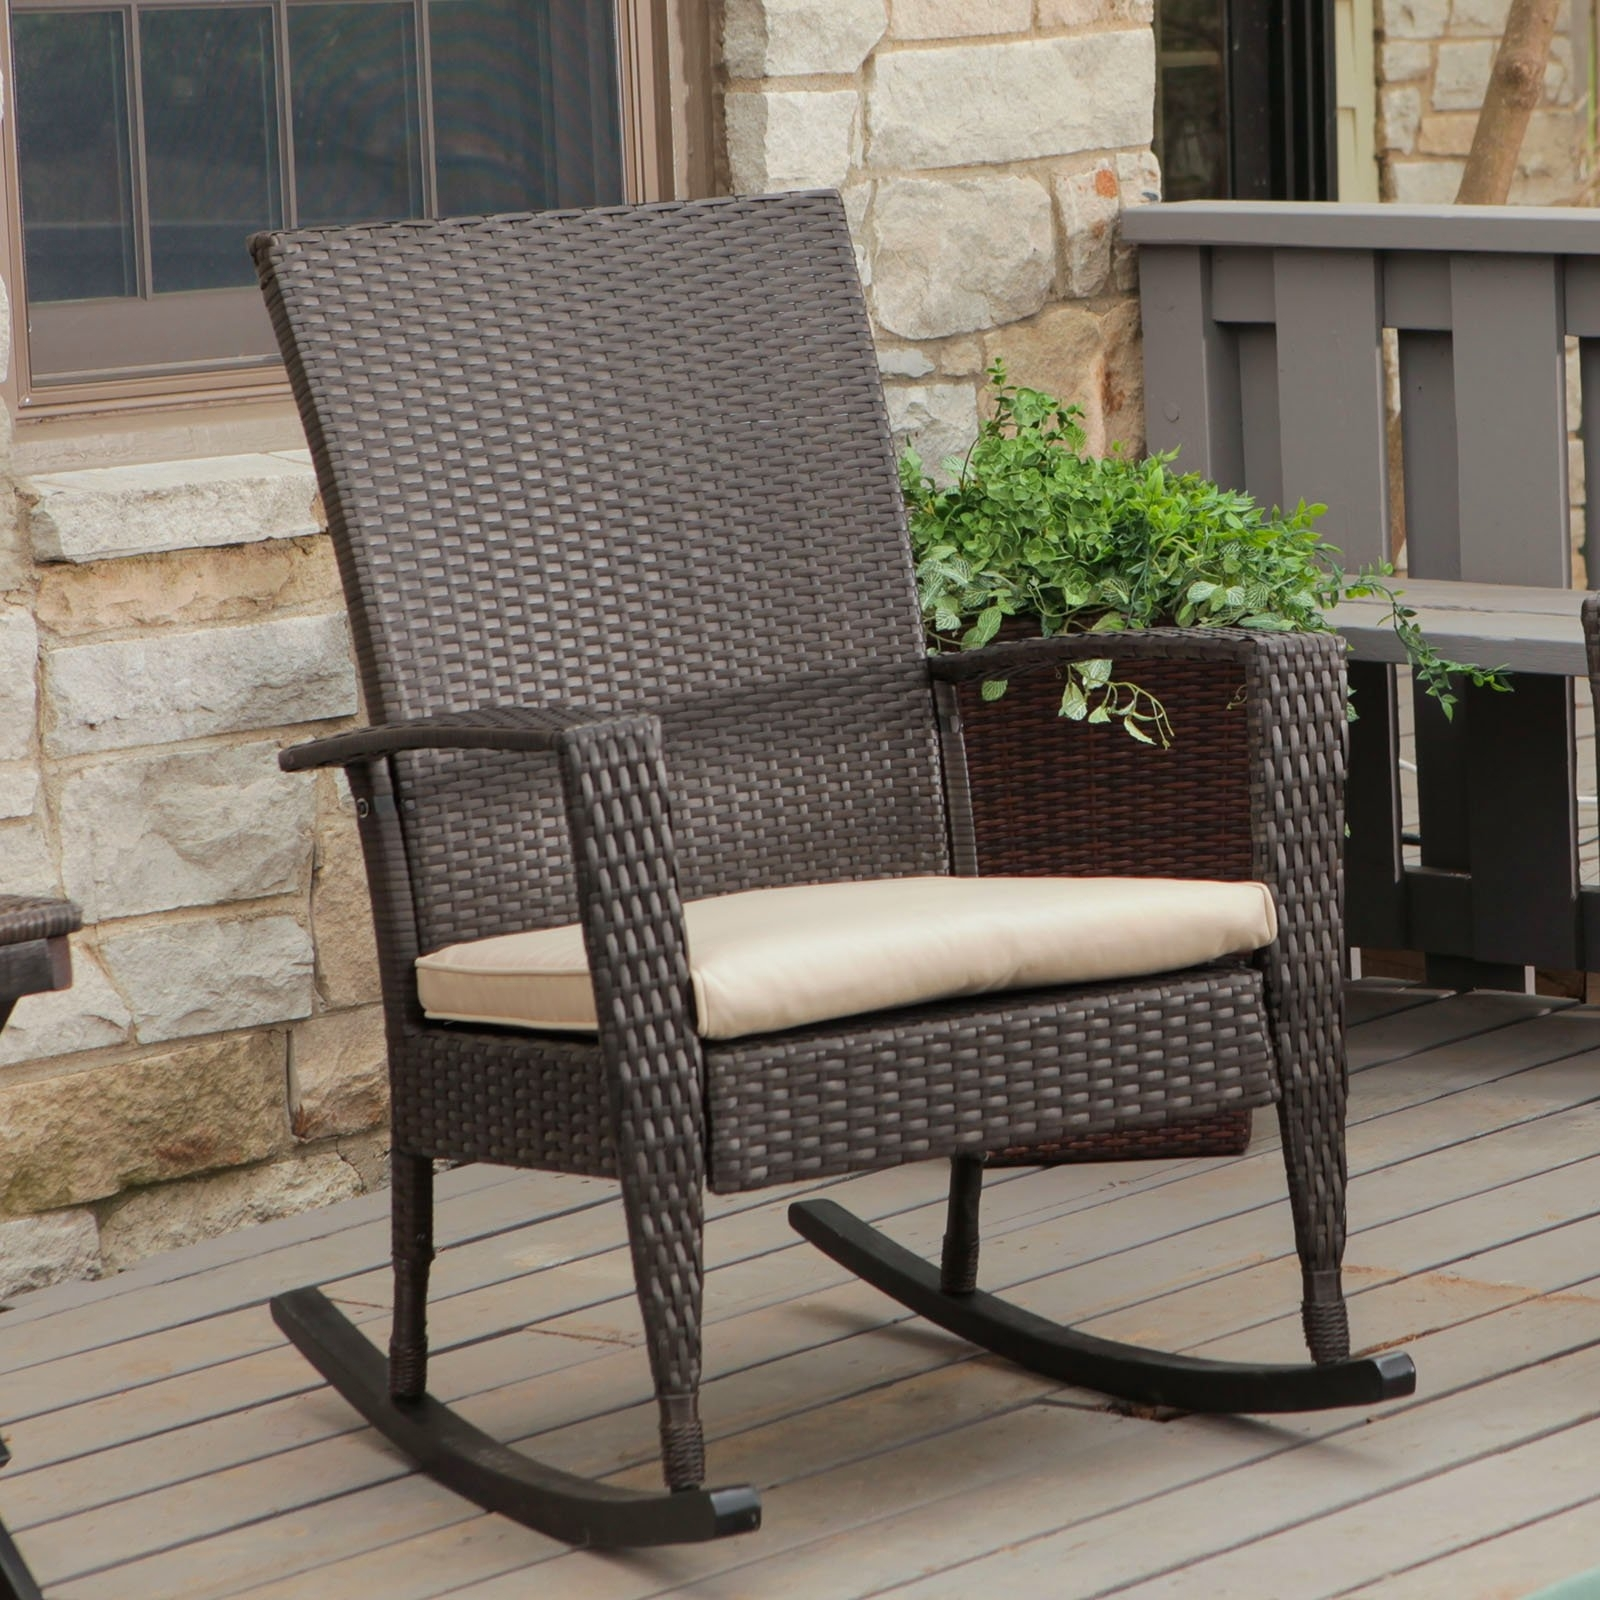 Outdoor Wicker Rocking Chairs Design — Wilson Home Ideas : How Oil Intended For Outdoor Wicker Rocking Chairs (View 10 of 15)